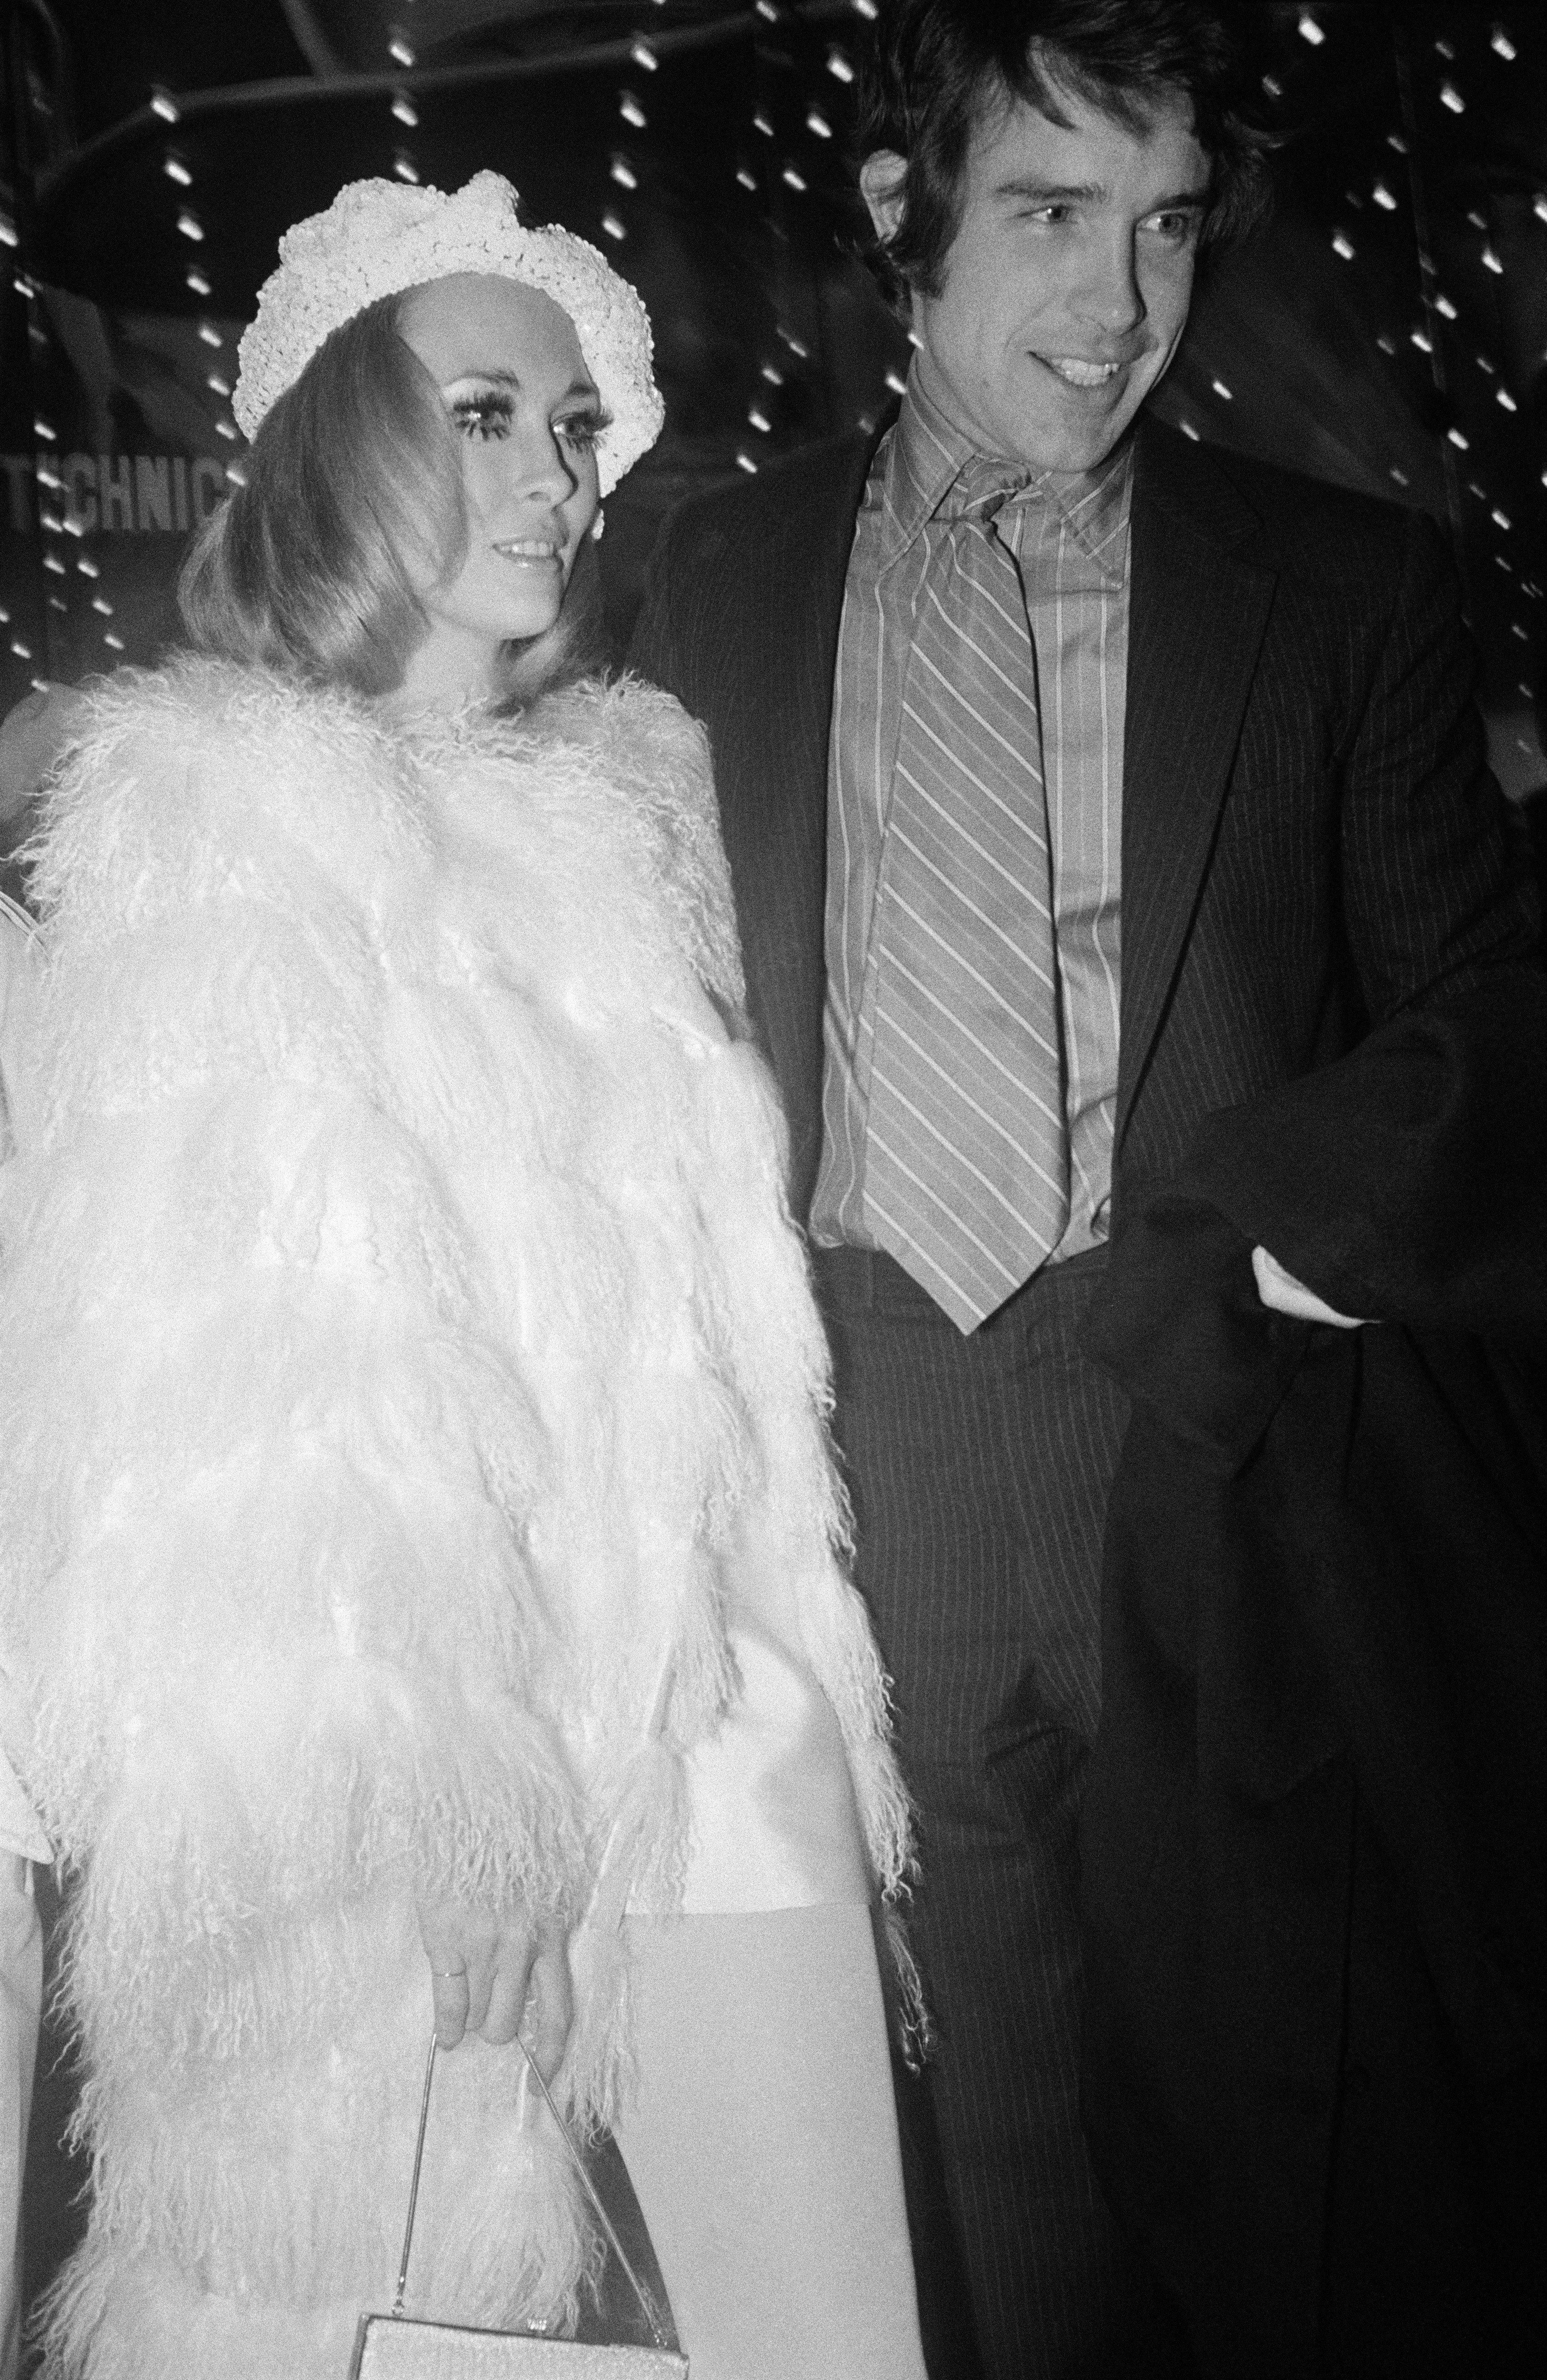 PARIS, FRANCE - JANUARY 20: Faye Dunaway And Warren Beatty At 'Bonnie And Clyde' Premiere, In Paris, France, On January 20, 1968 . (Photo by REPORTERS ASSOCIES/Gamma-Rapho via Getty Images)